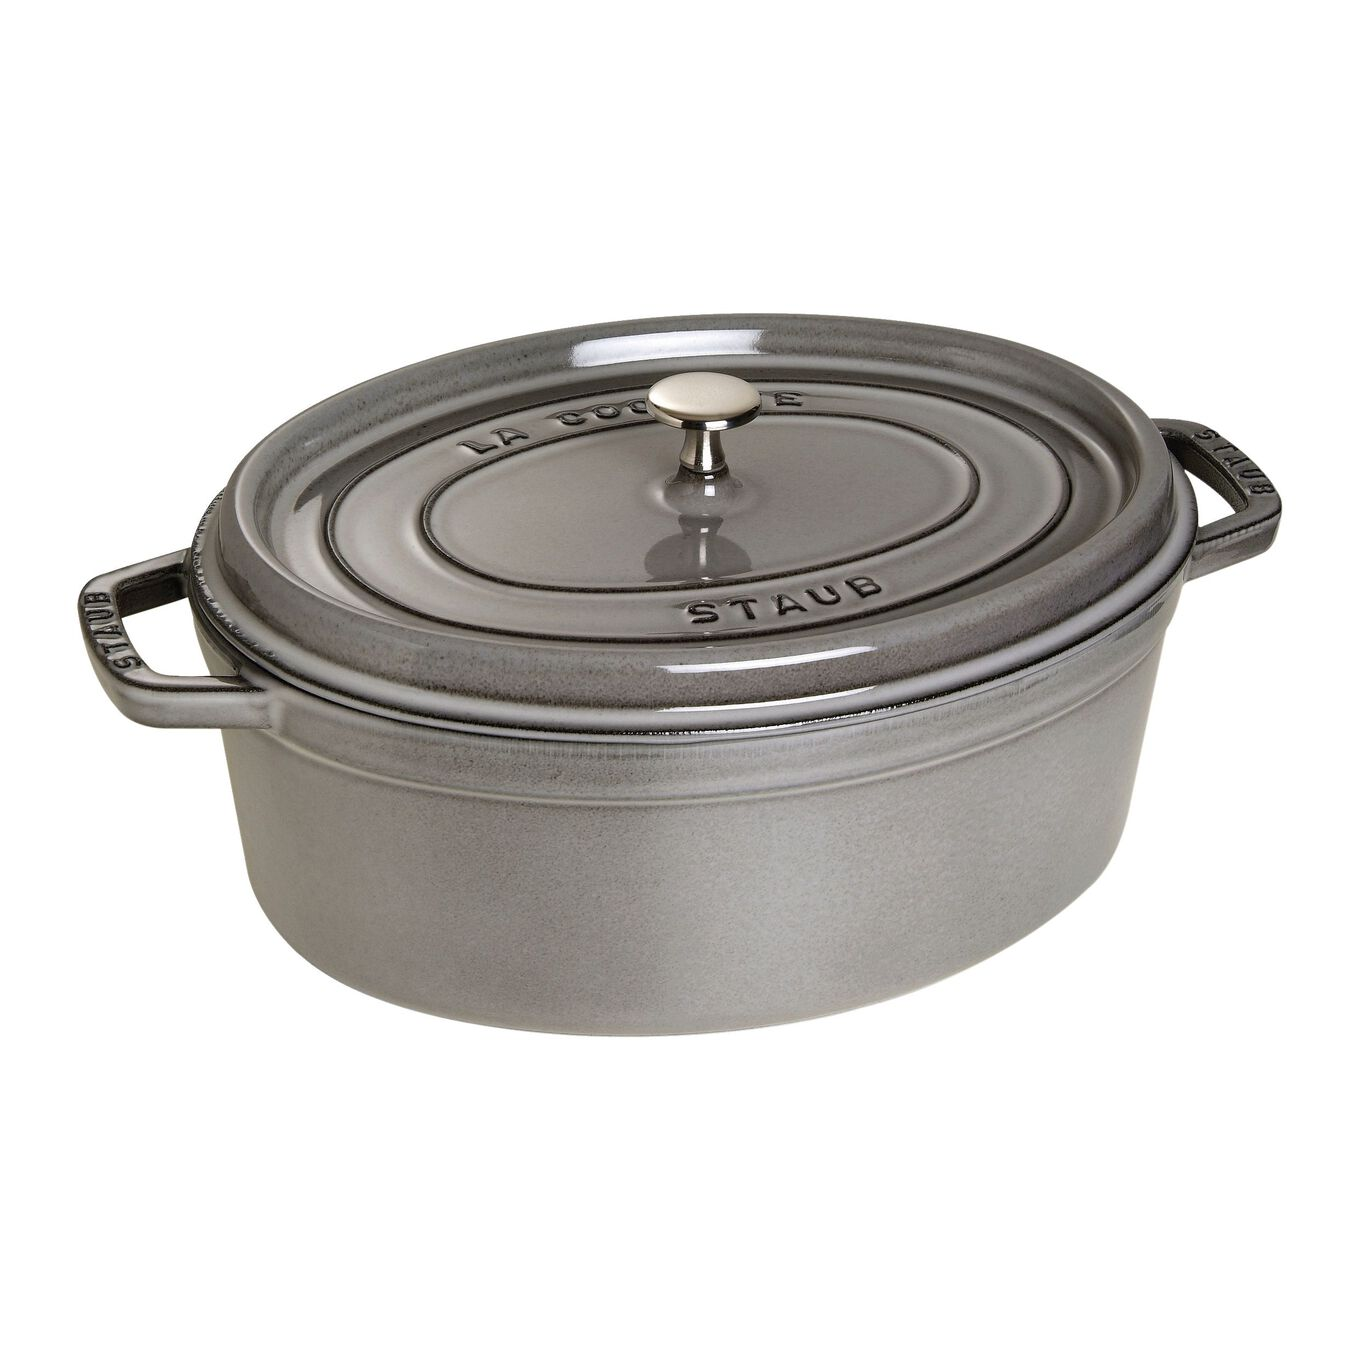 6.75 l Cast iron oval Cocotte, Graphite-Grey,,large 1